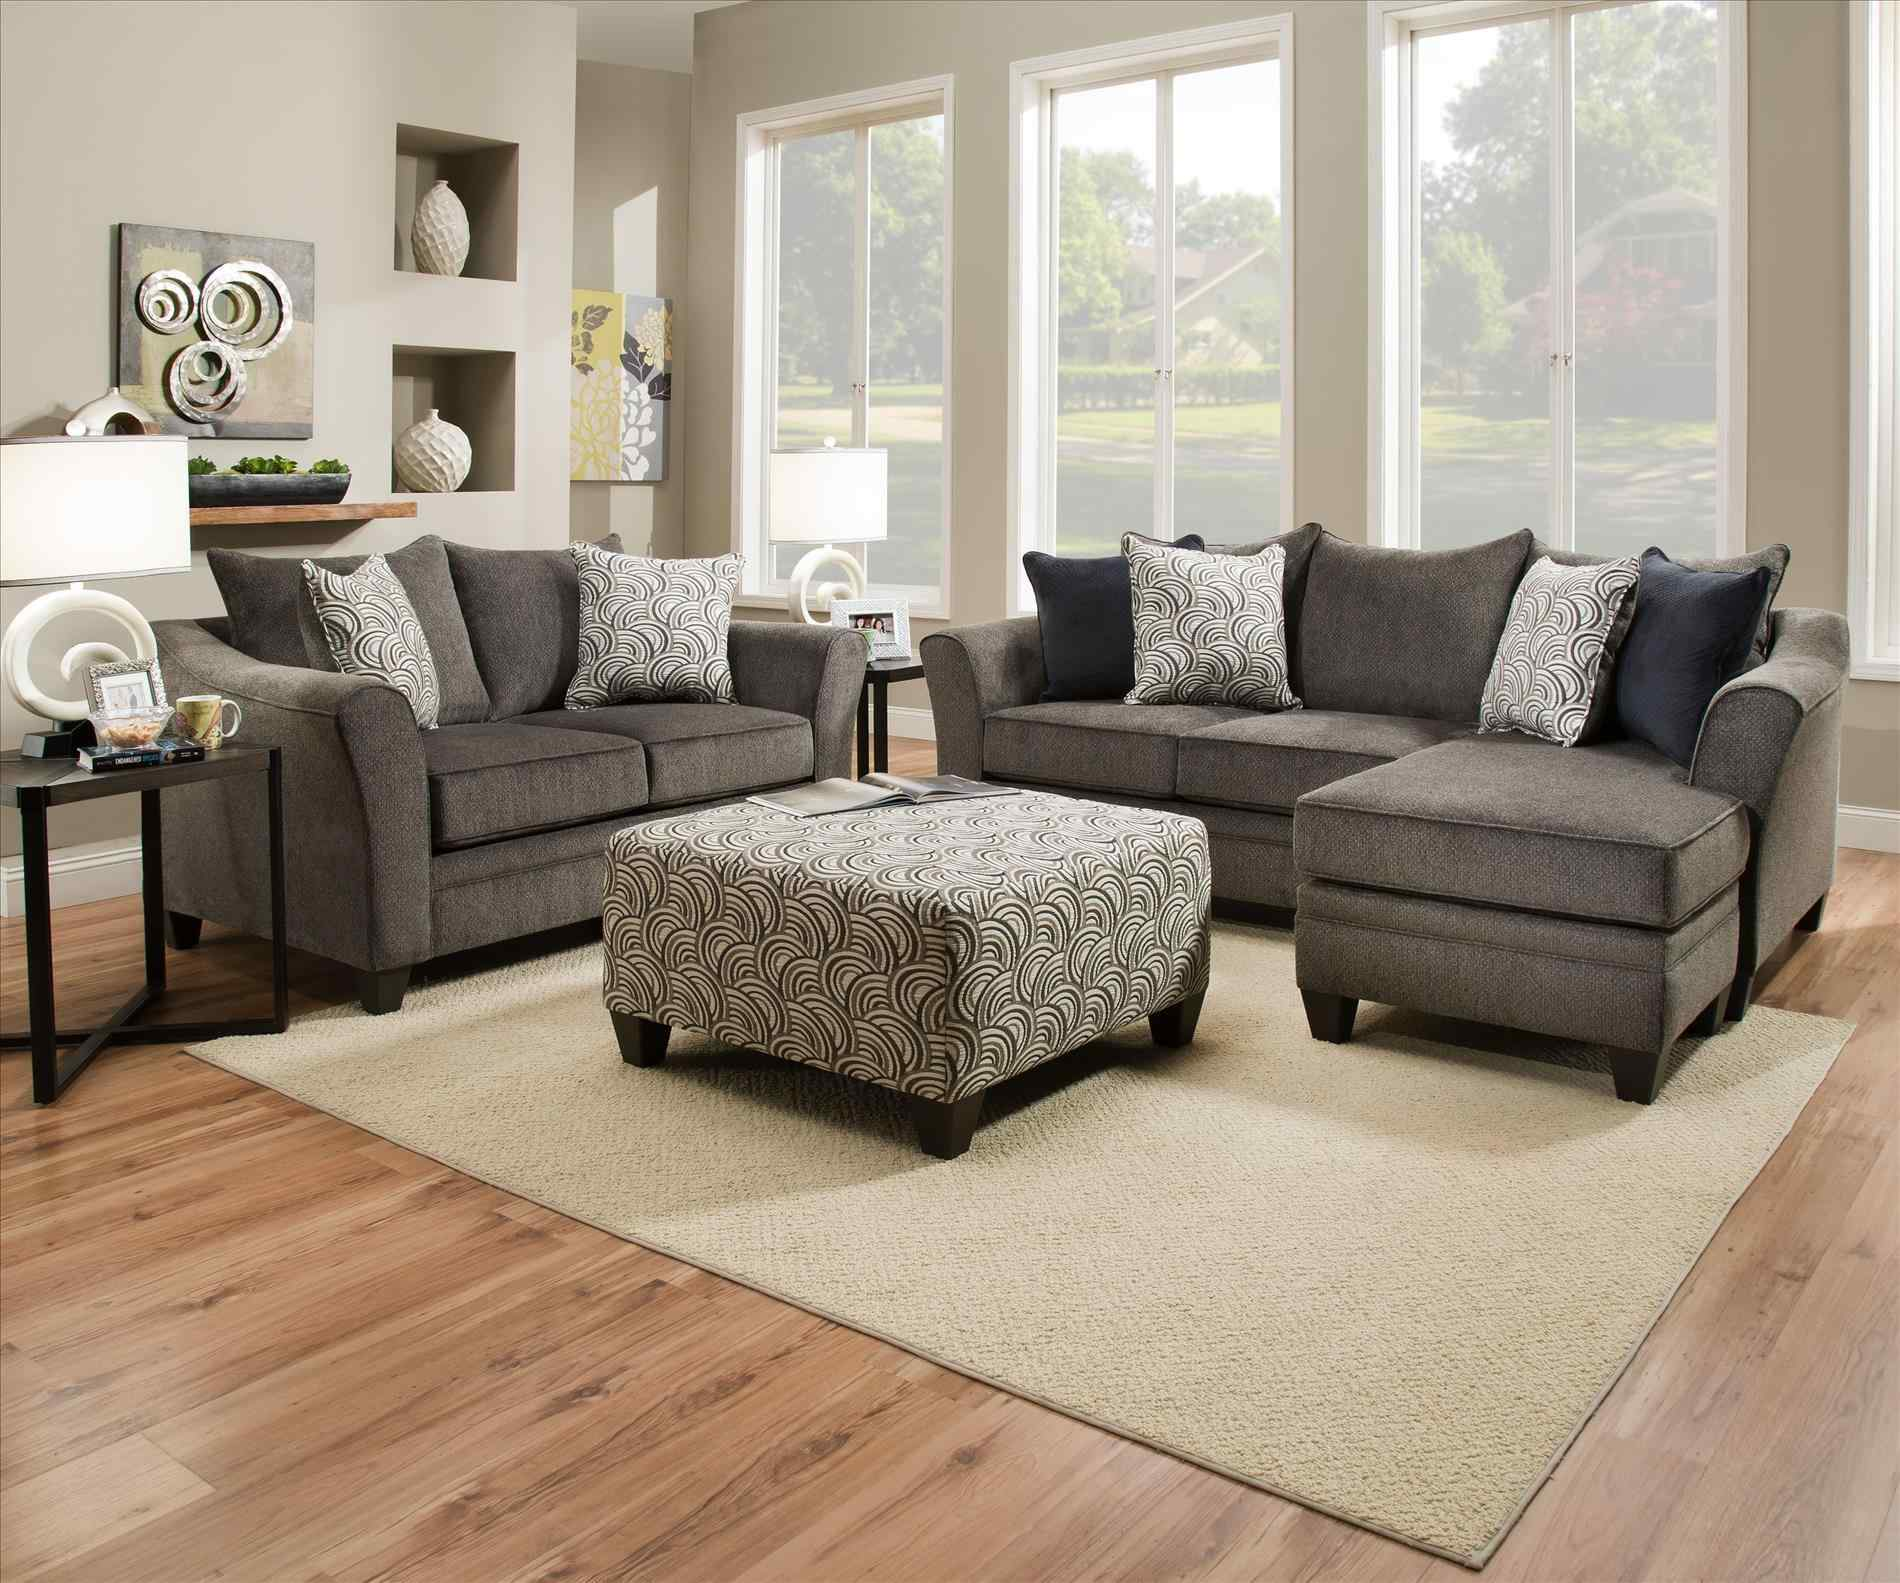 Overstock Warehouse Locations | Overstock Outdoor Furniture | Lexington Overstock